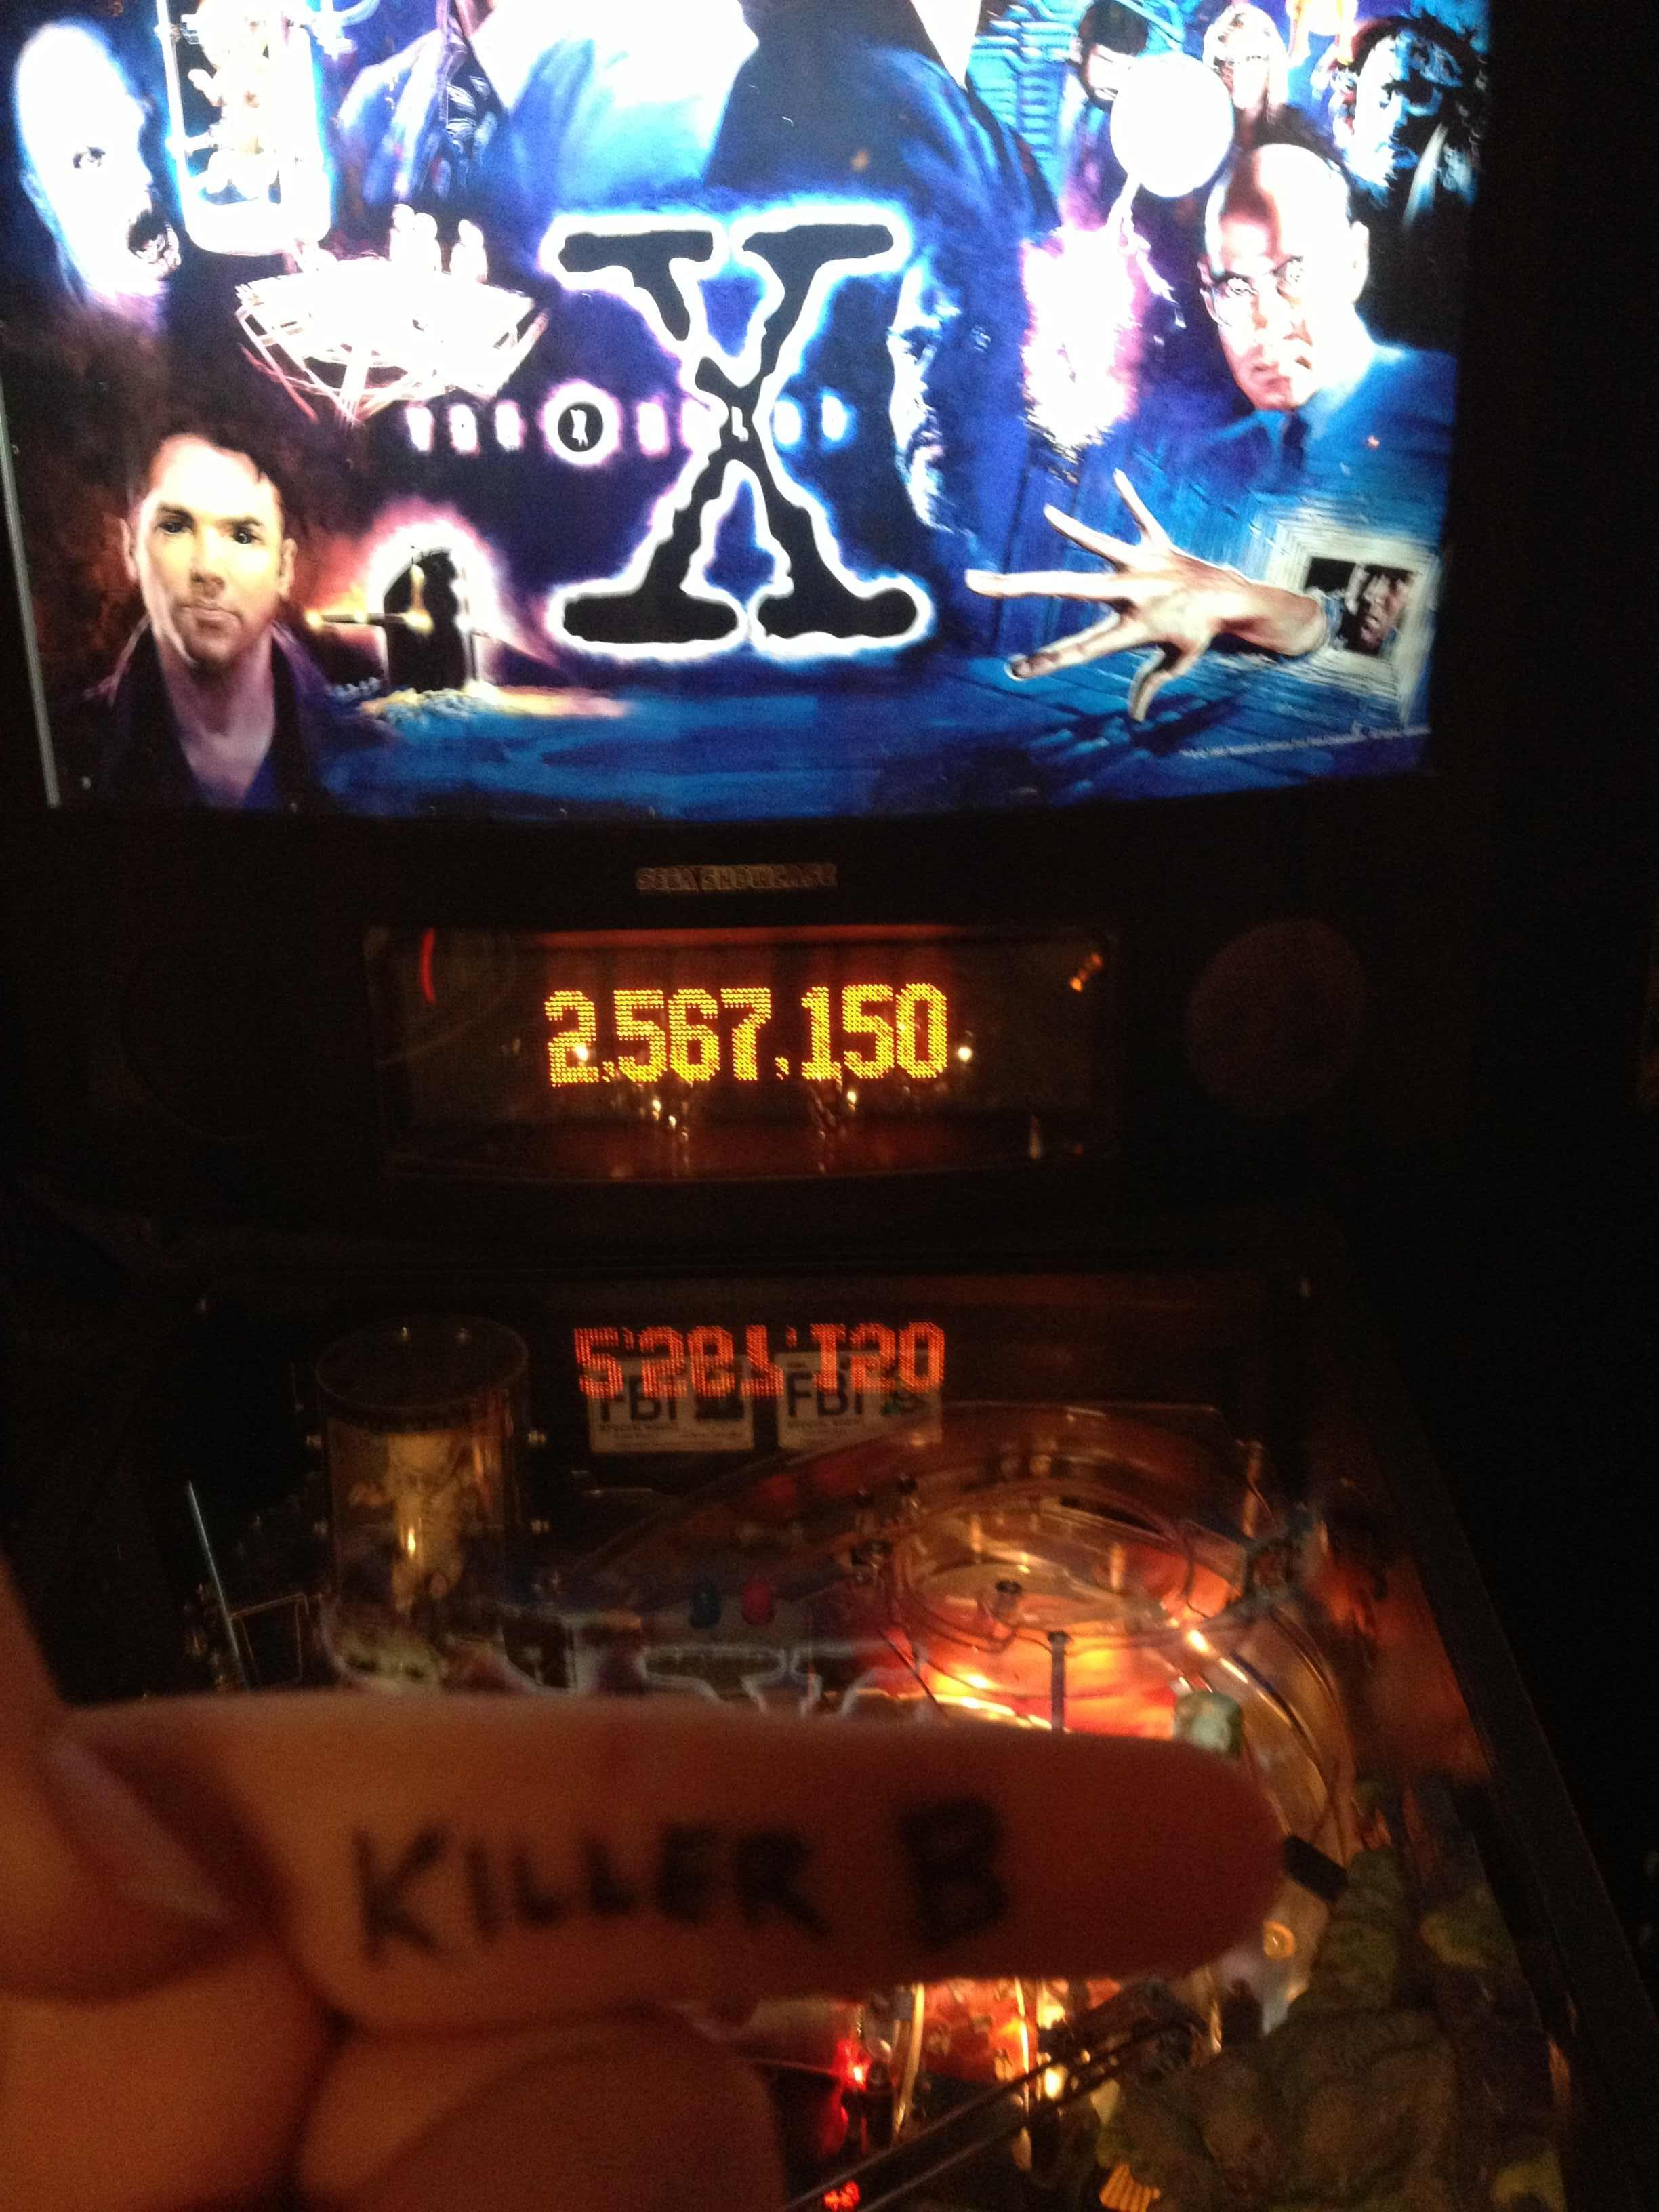 KillerB: X-Files (Pinball: 3 Balls) 2,567,150 points on 2013-10-23 14:01:22